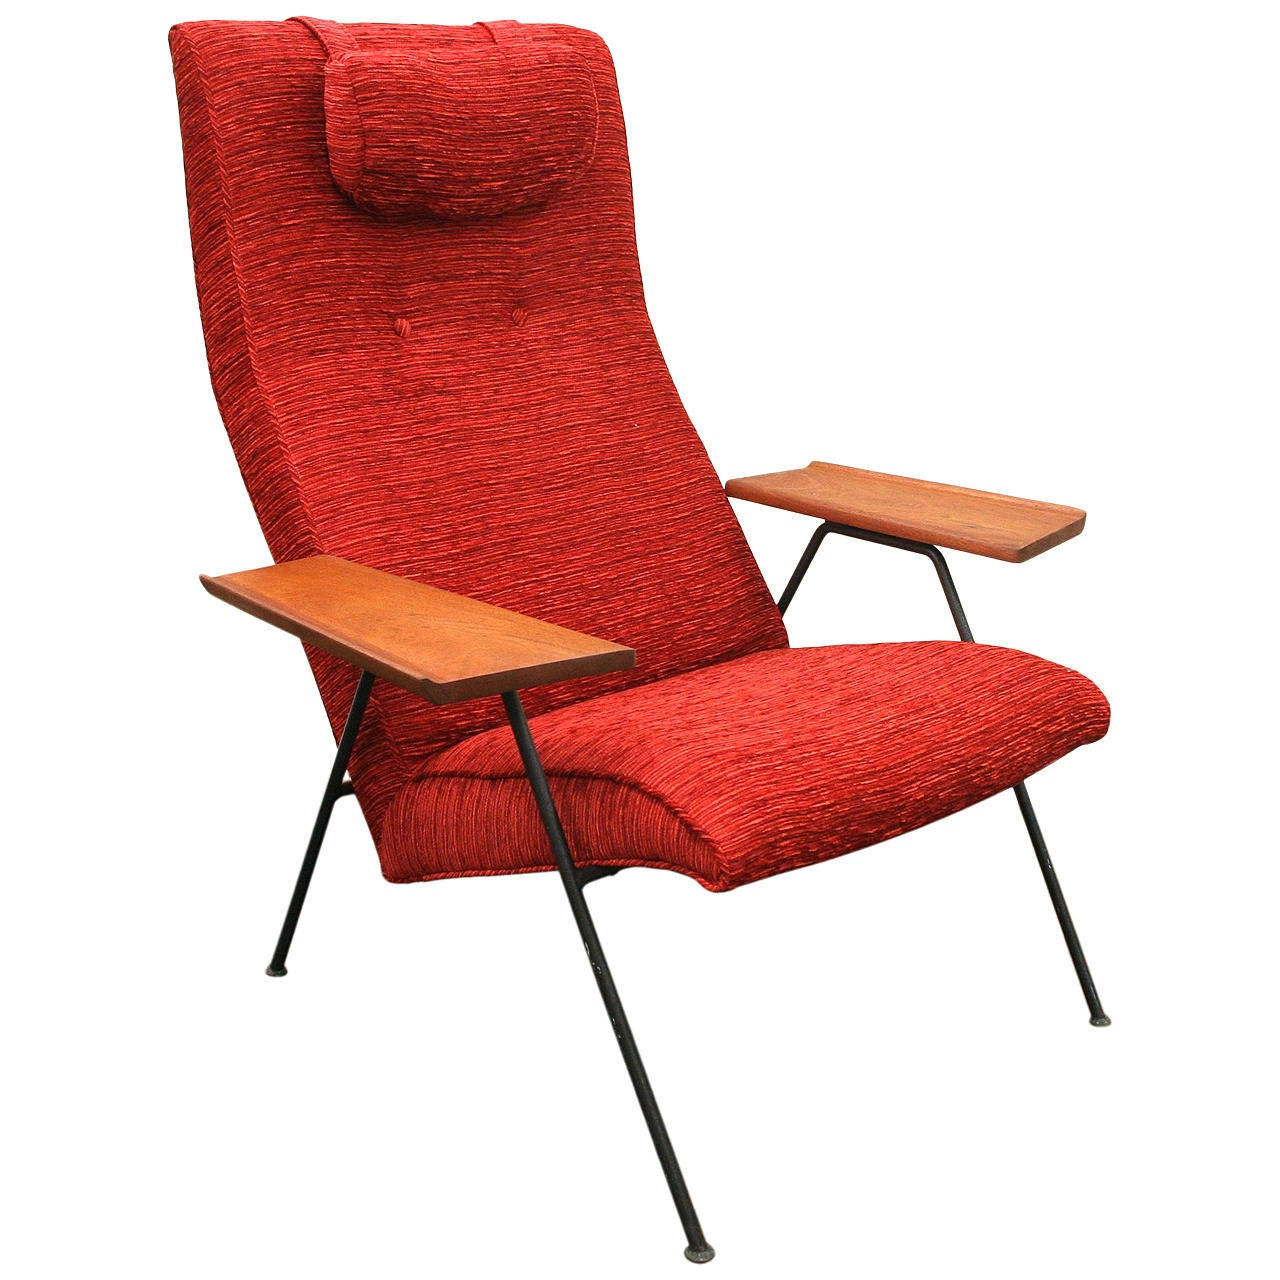 Wrought Iron Mid Century Modern Lounge Chair by Robin Day circa Early 1950s